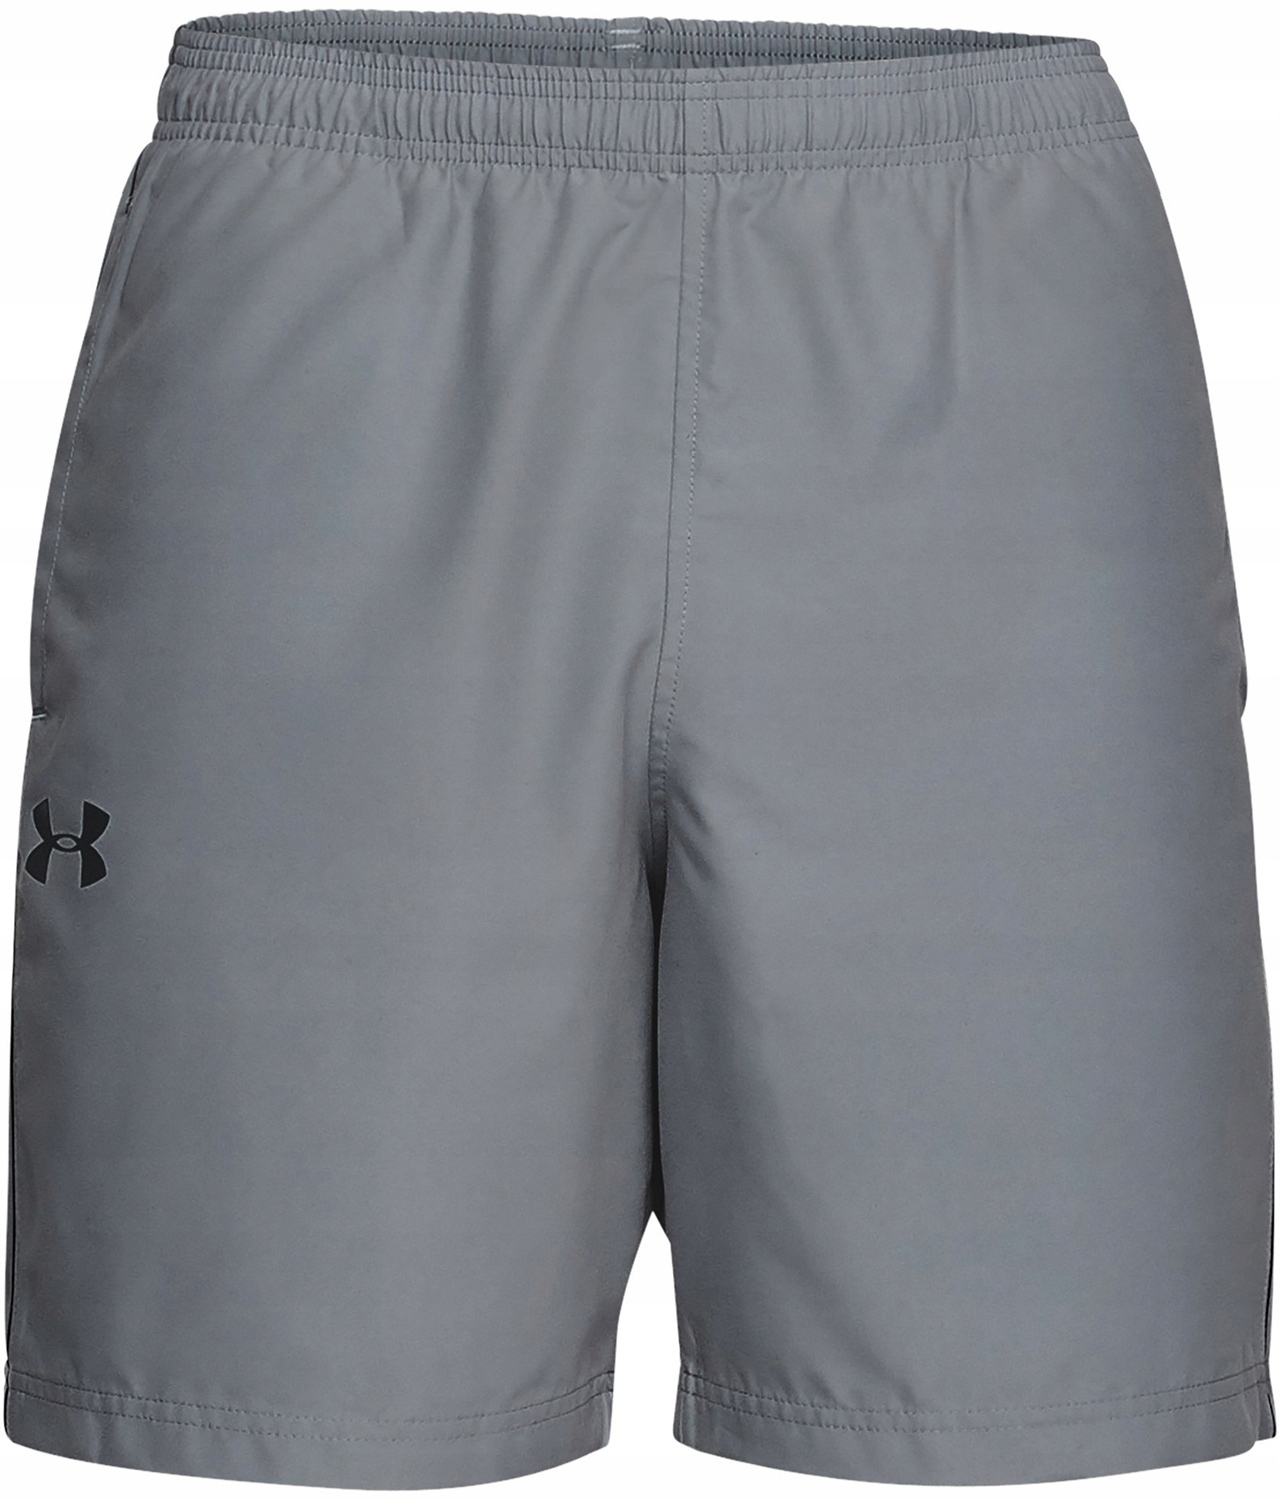 Spodenki Under Armour Woven Graphic Short Grey # L